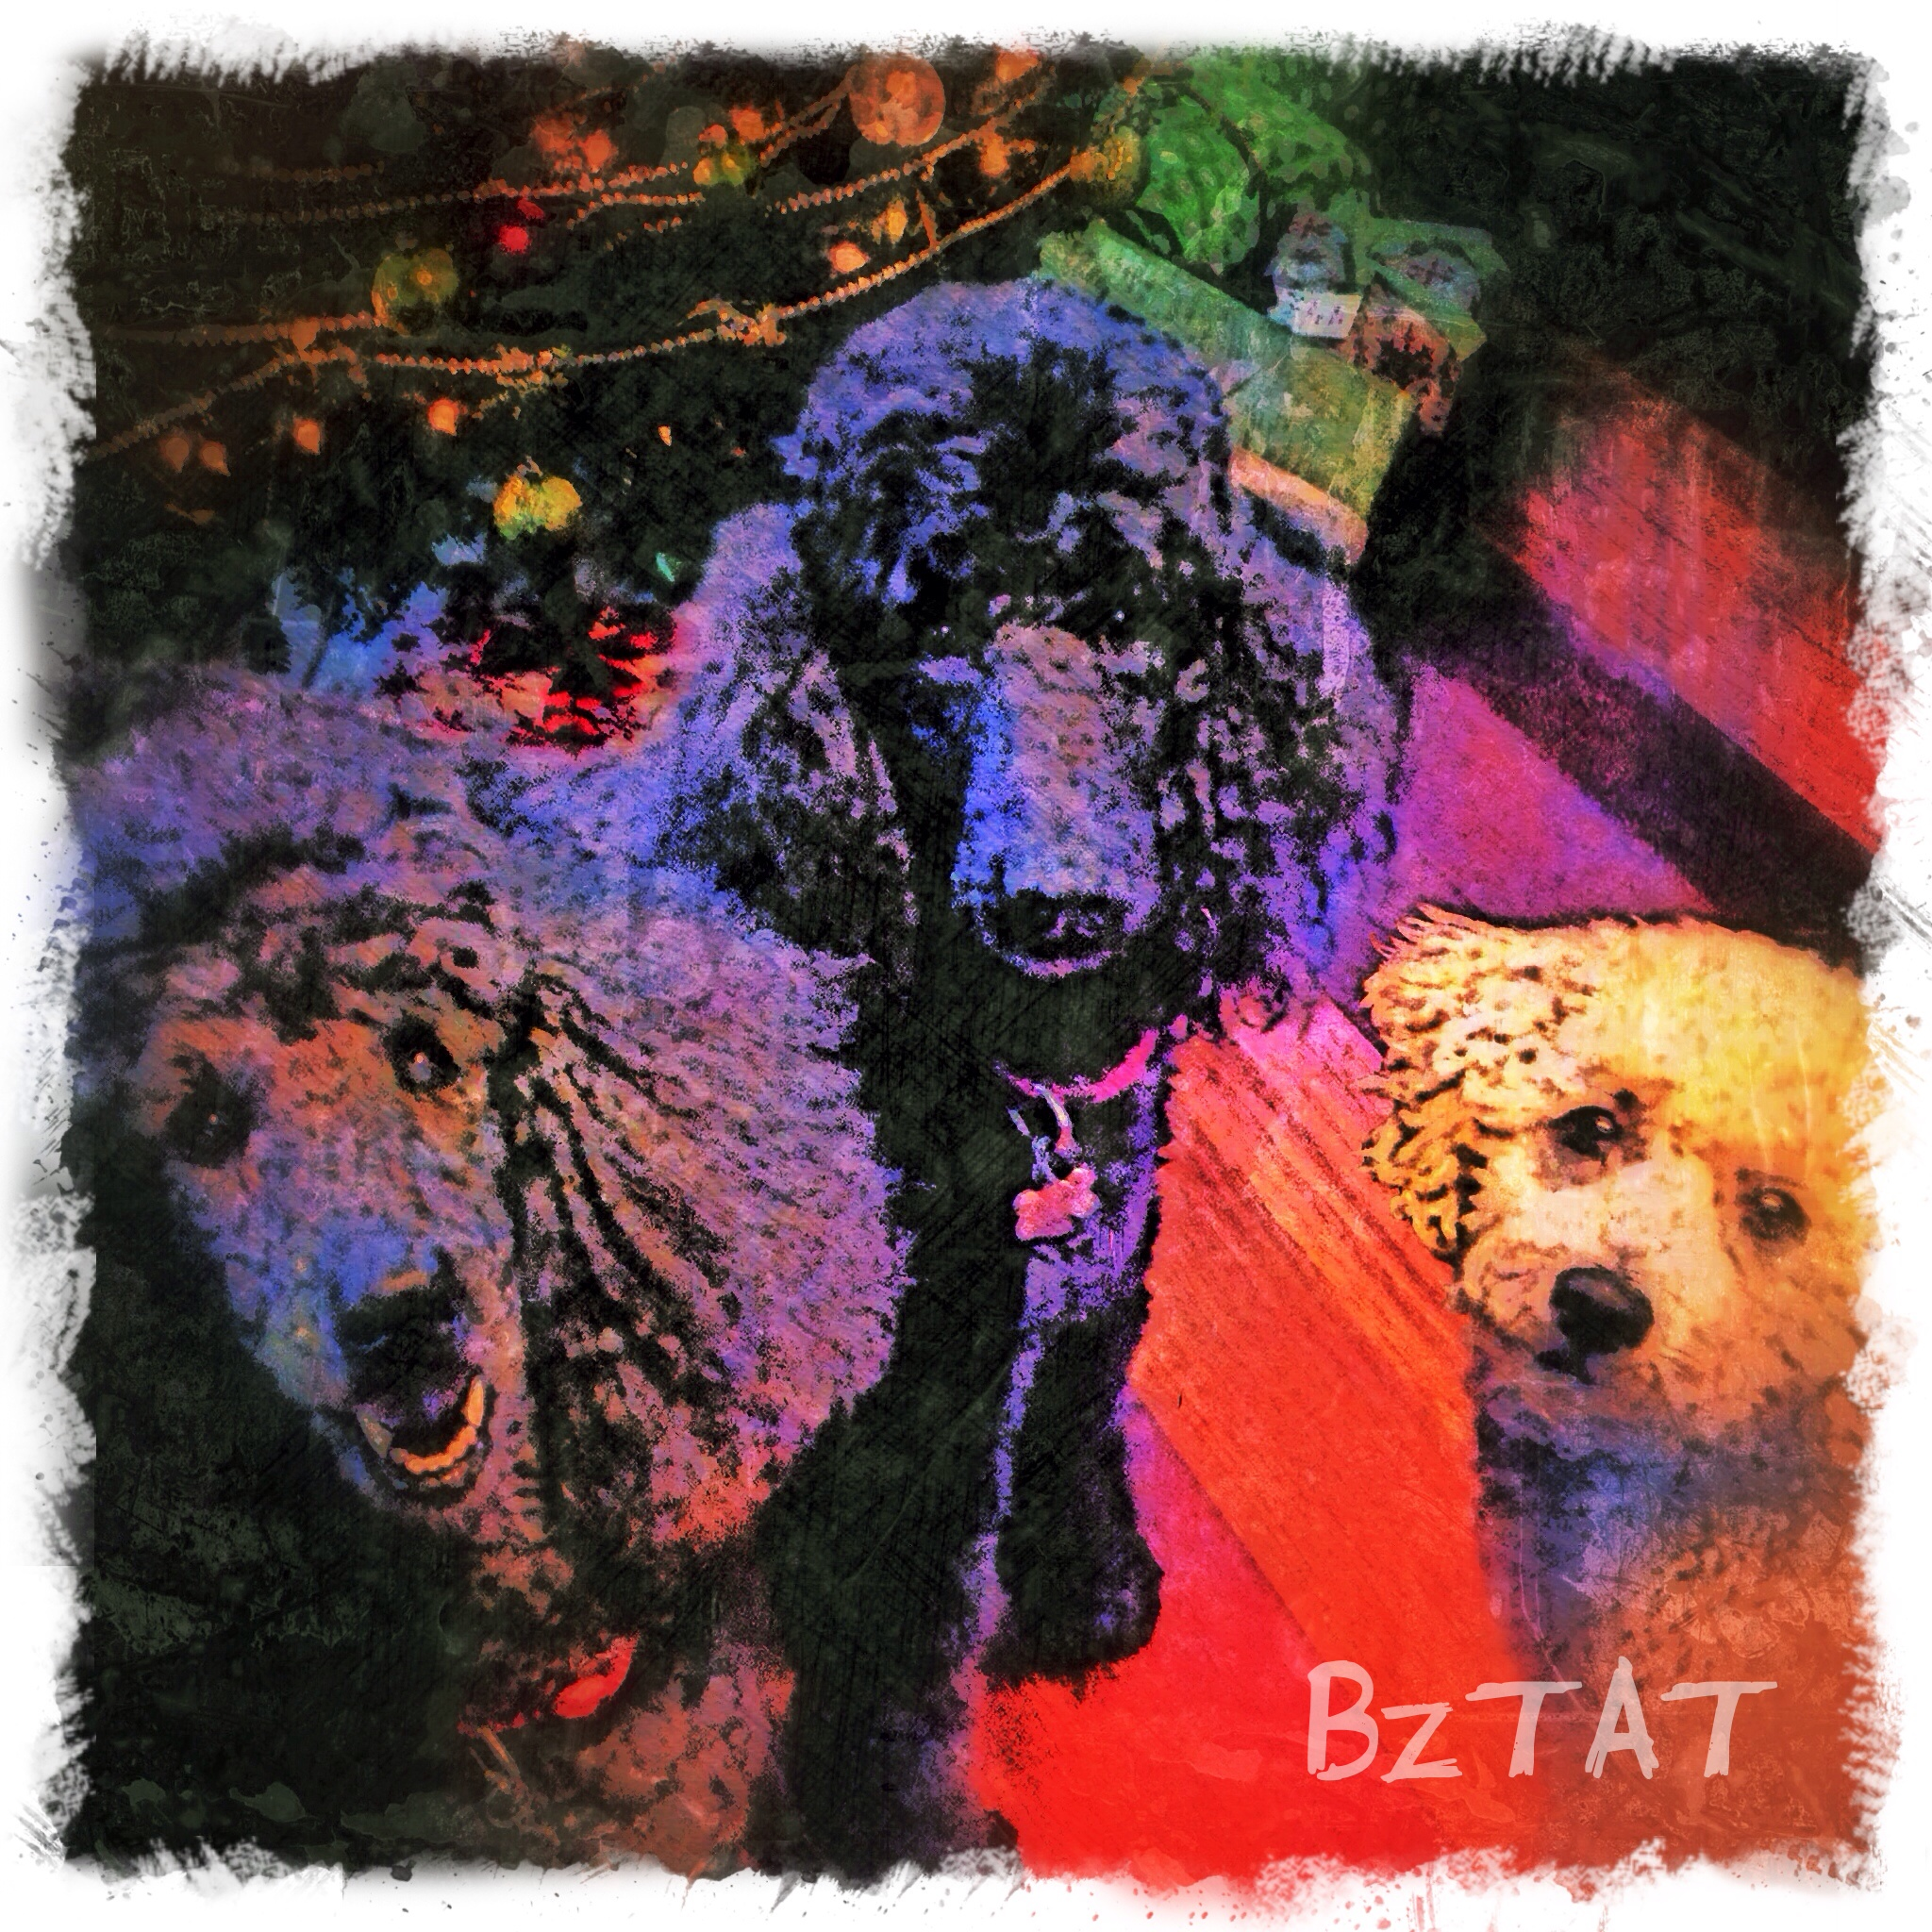 12-Digital-pet-portrait-dog-art-calendar-BZTAT